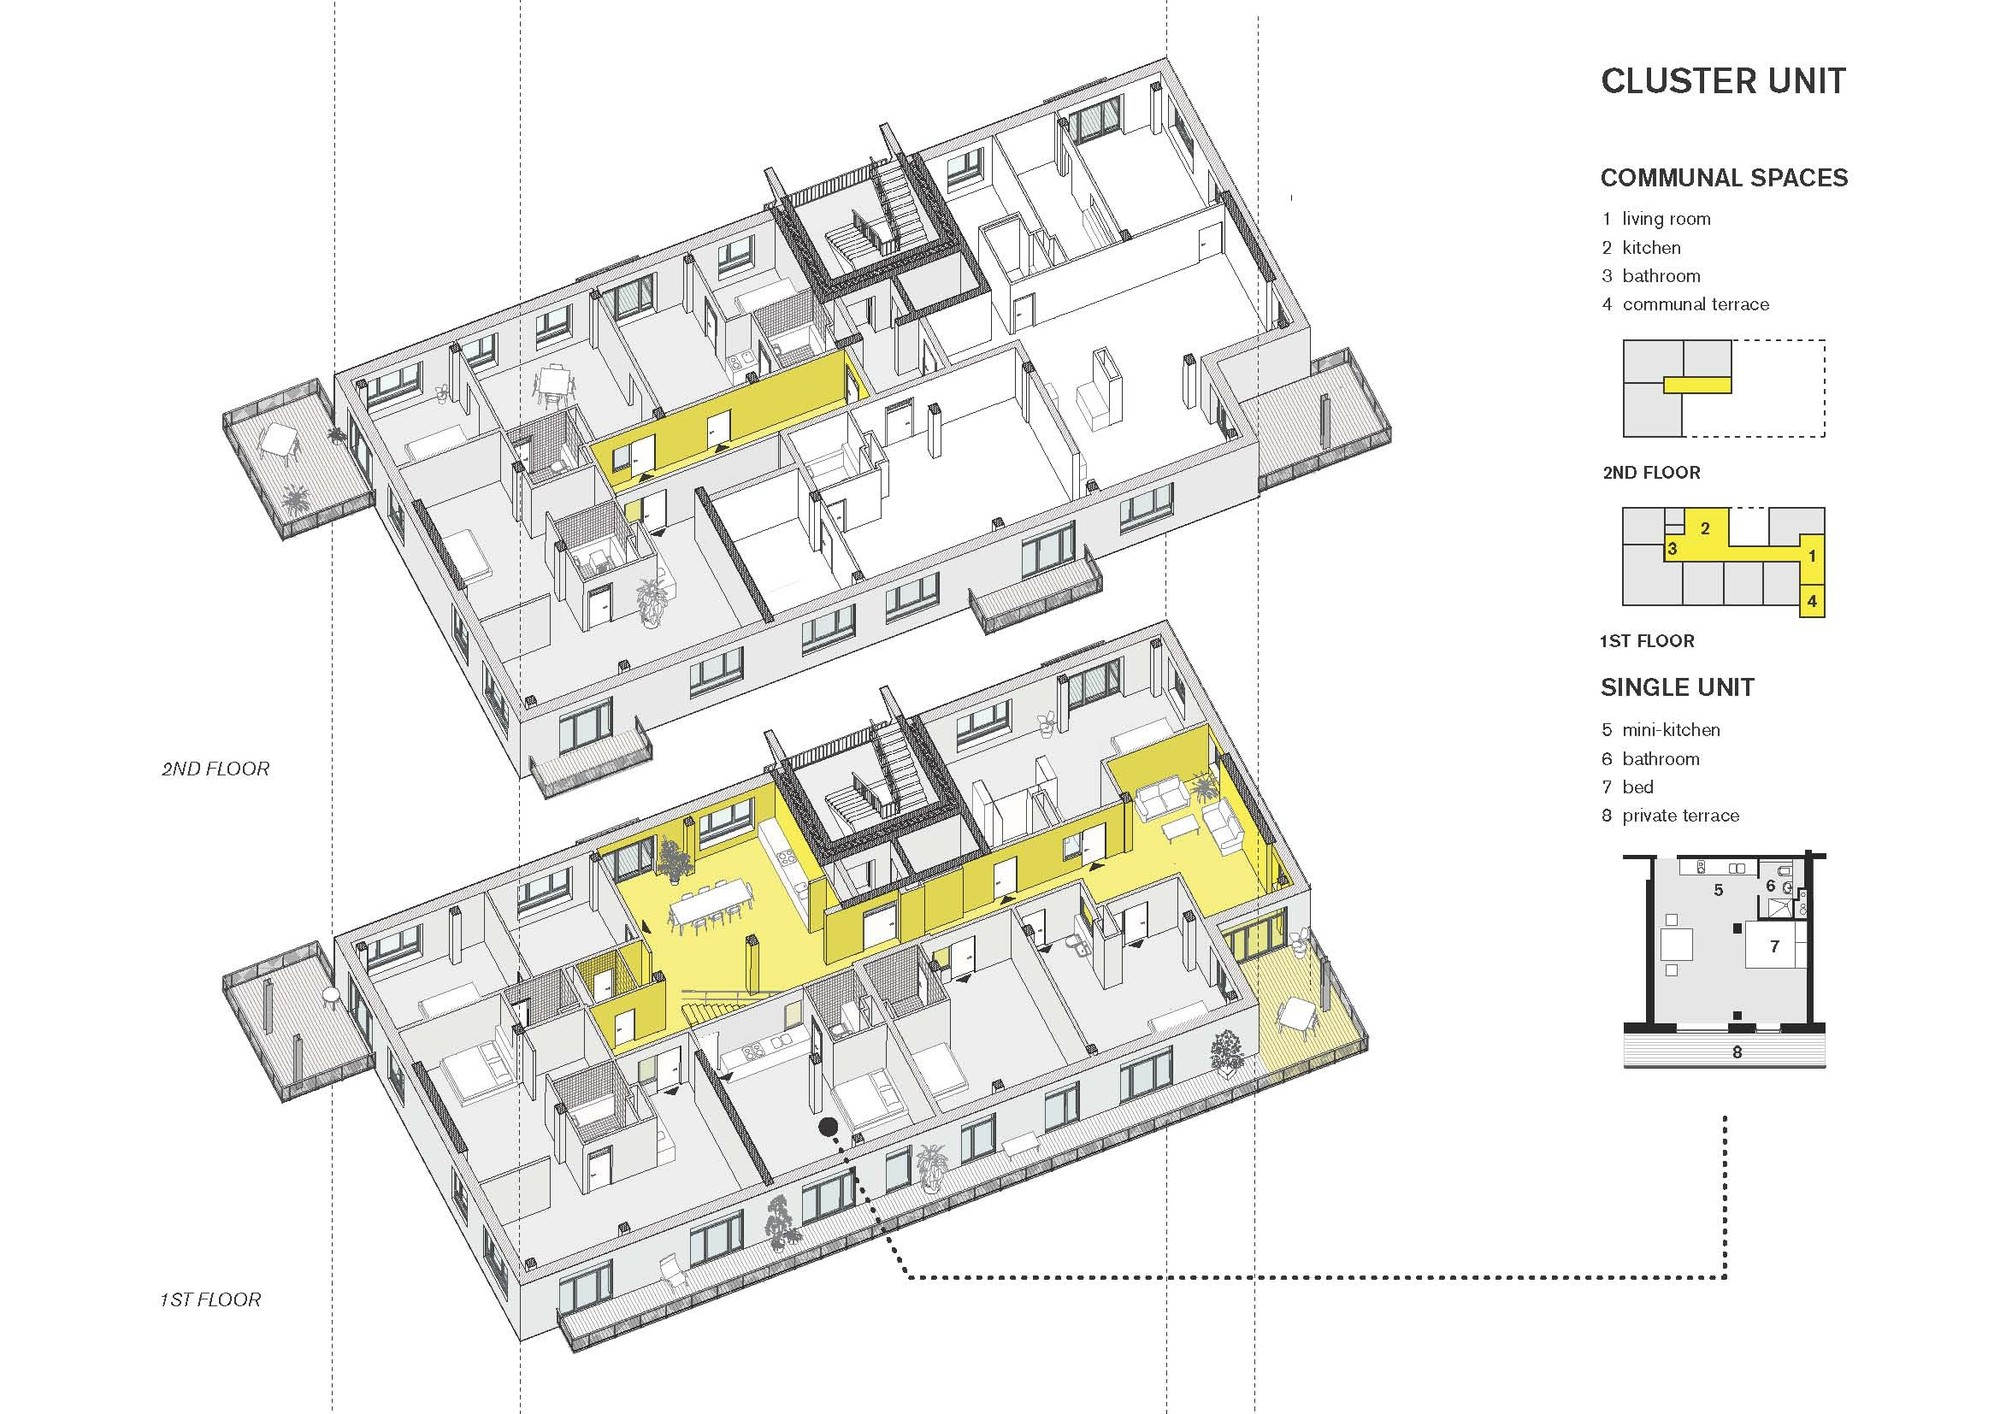 Large Kitchen Floor Plans Gallery Of Coop Housing At River Spreefeld Carpaneto